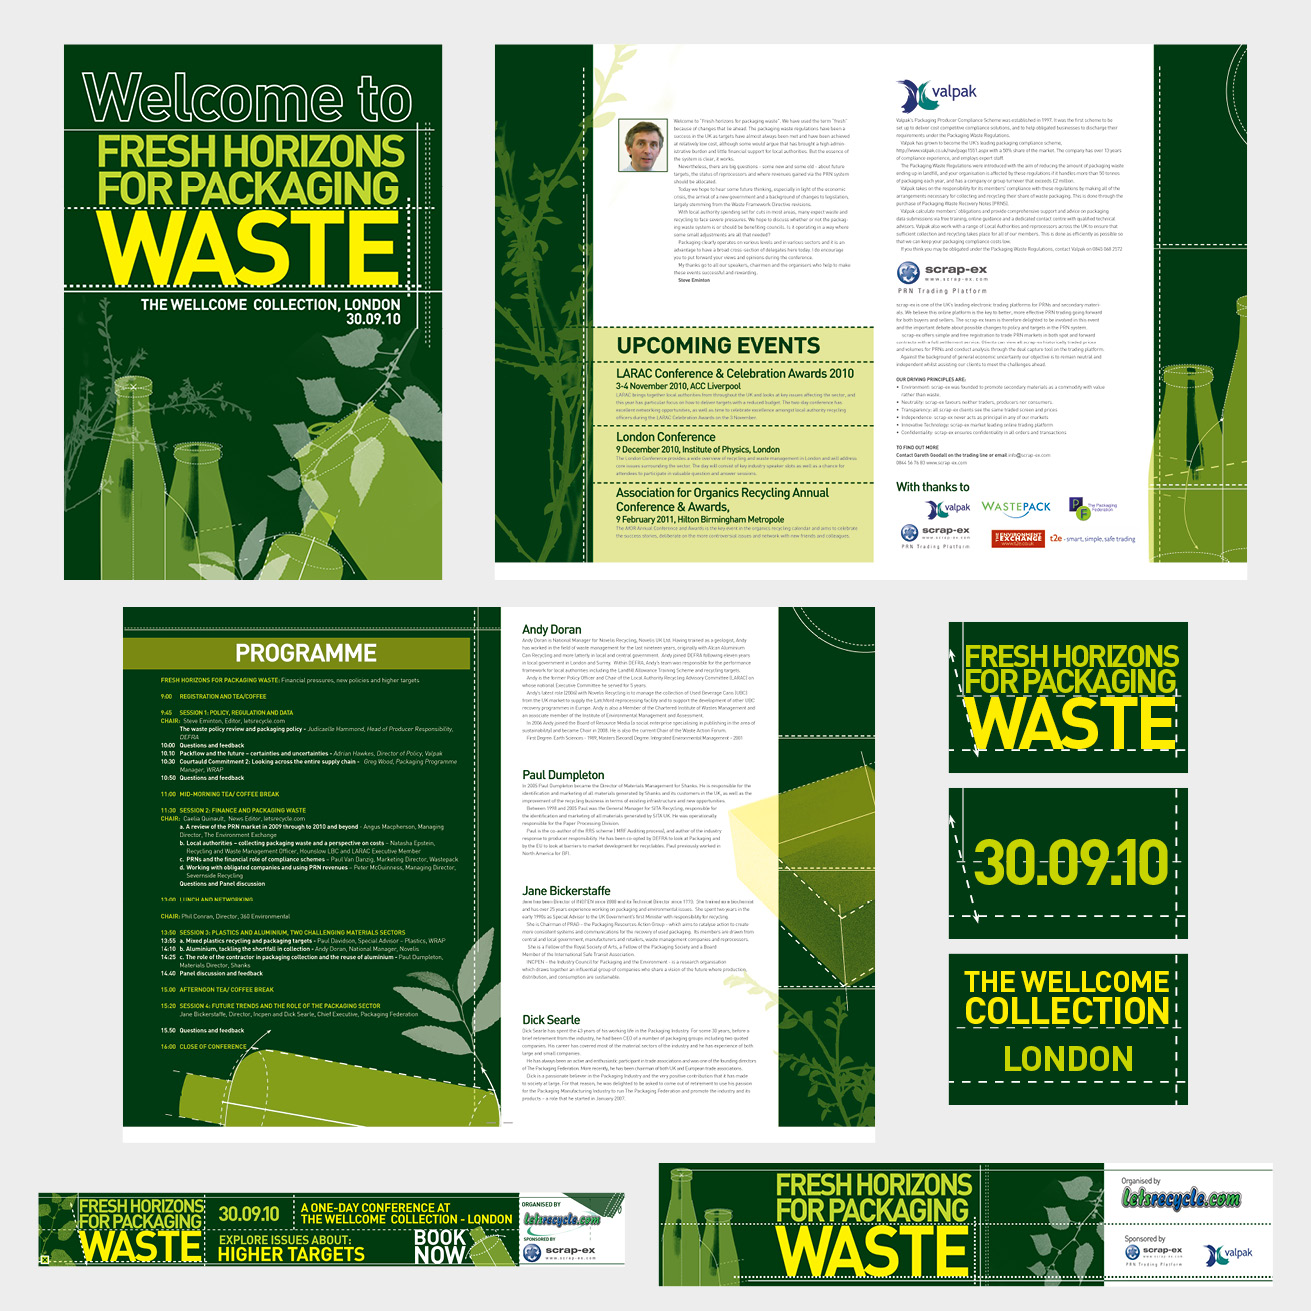 Fresh Horizons for Packaging Waste